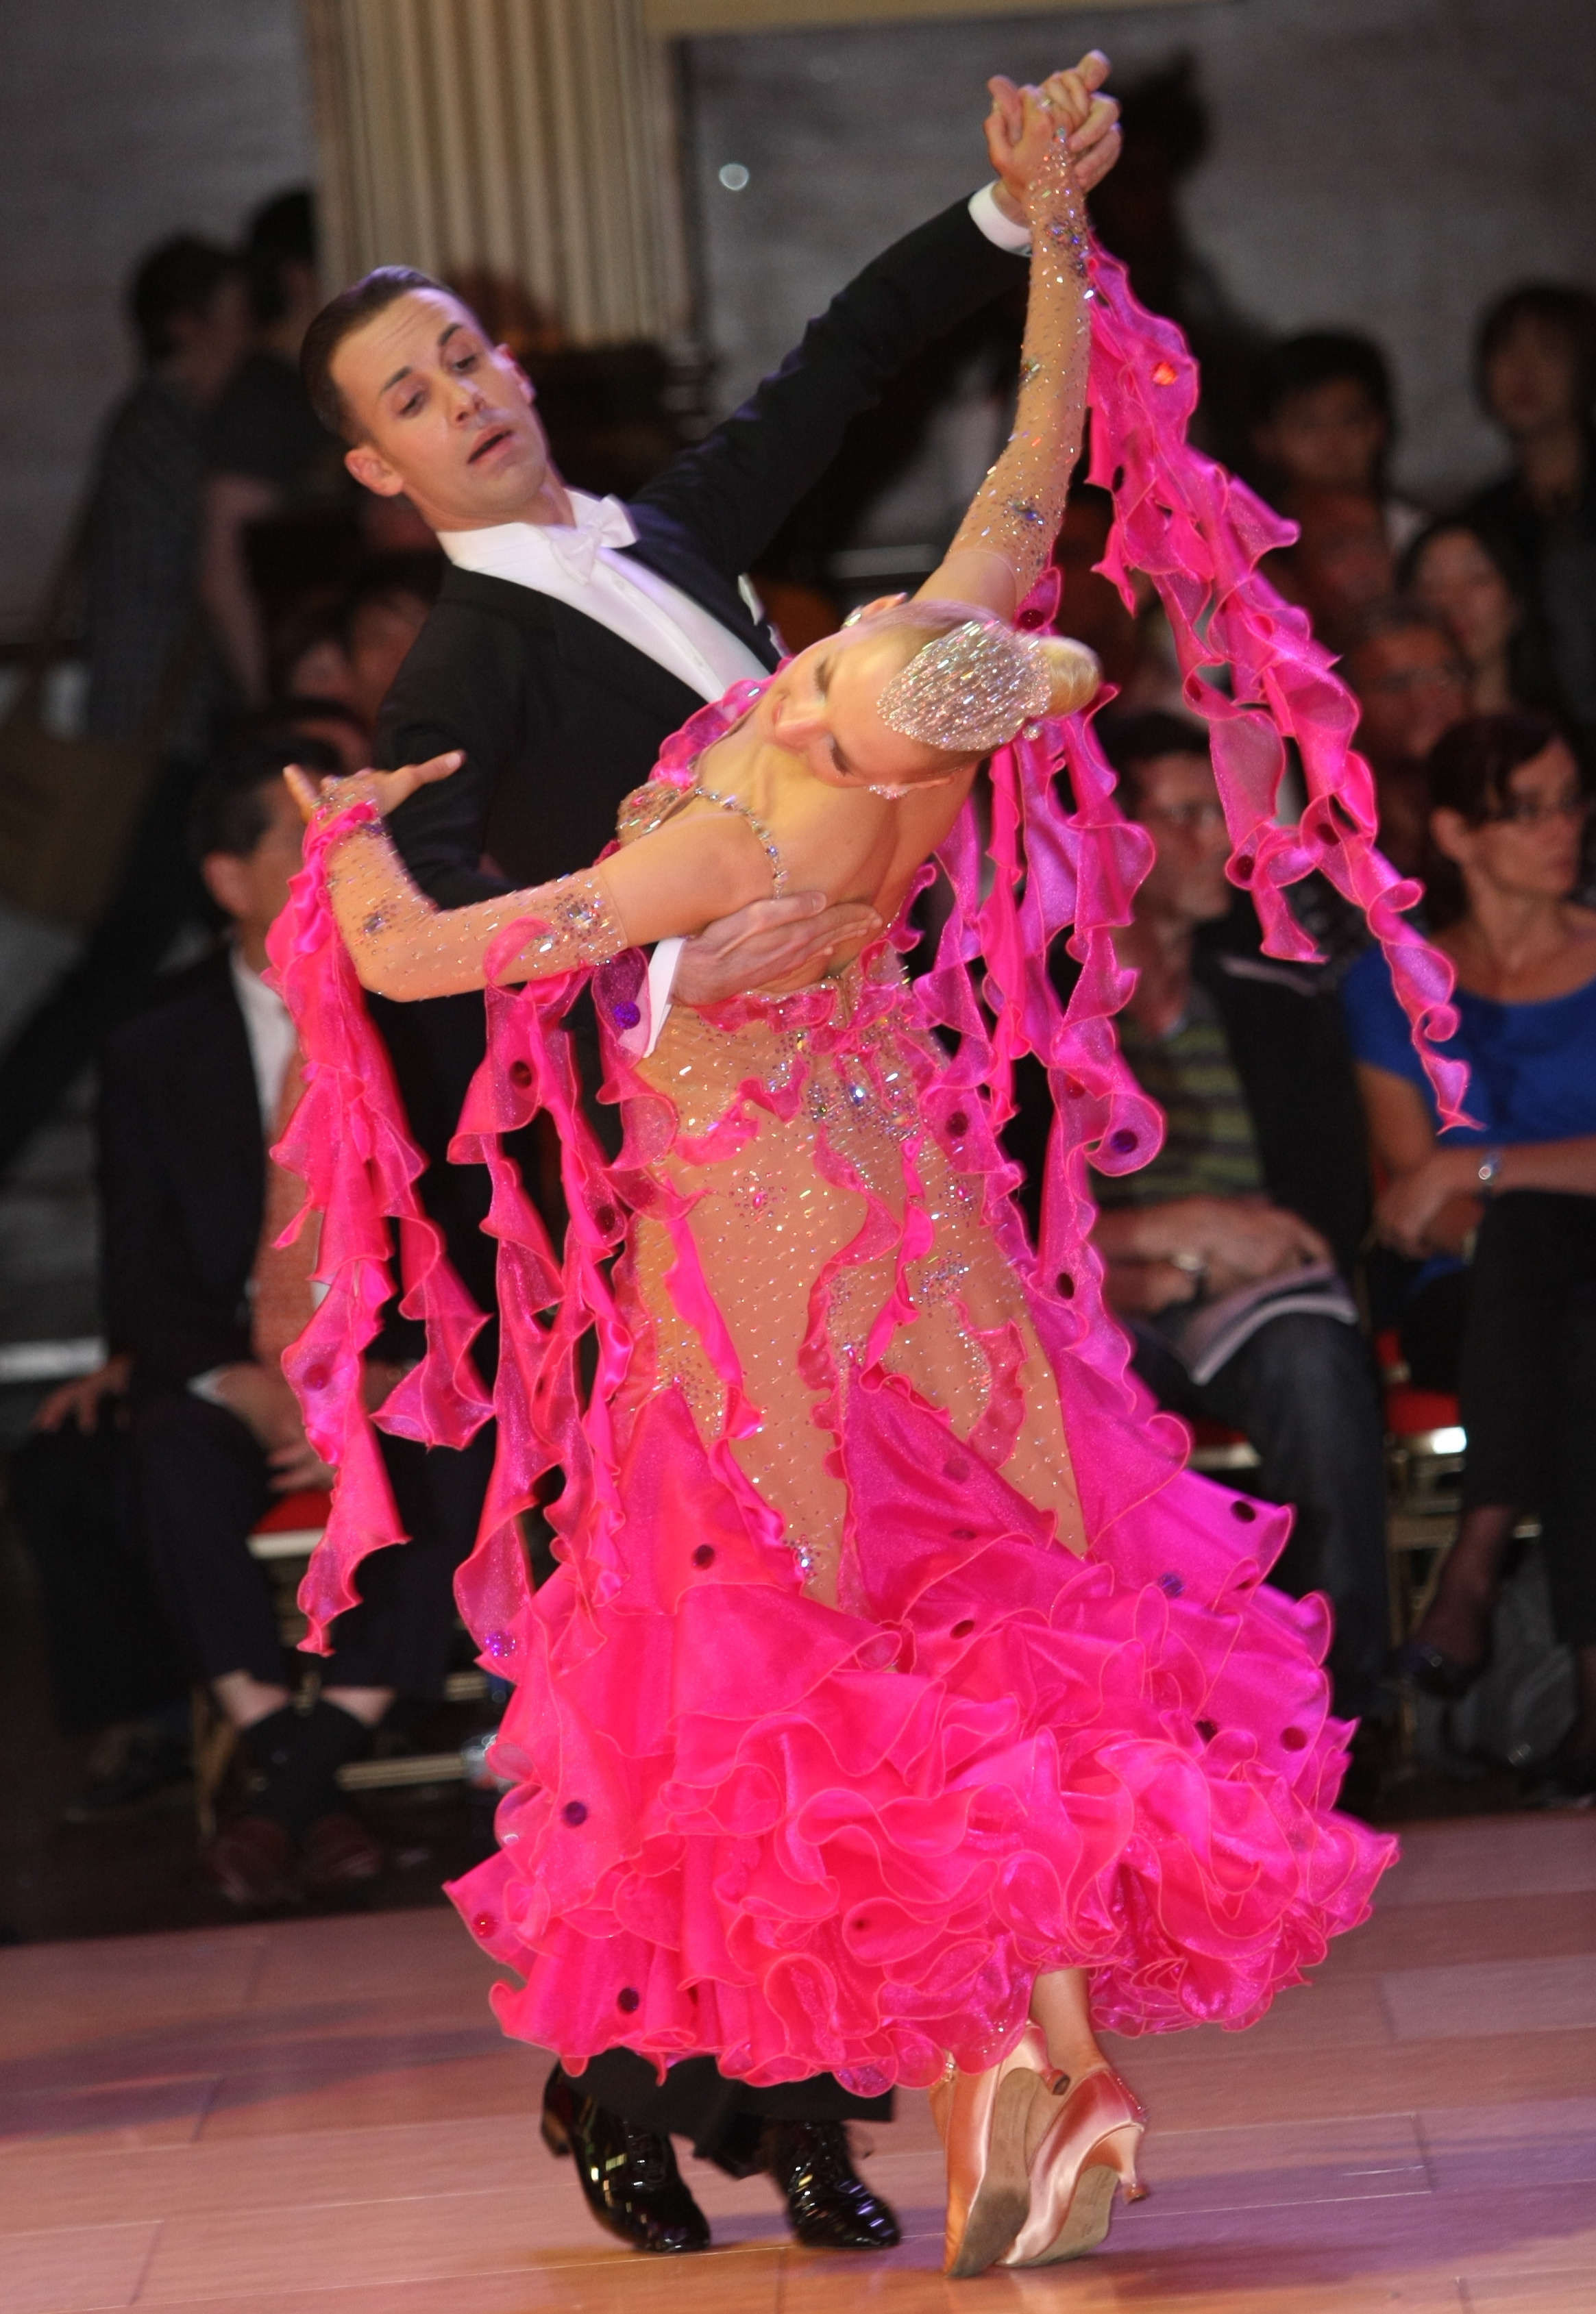 Paolo & Liene Di Lorenzo - International Standard Champions & U.S. National Professional Classic Show Dance Champions!! - Teach International Standard Classes Thursday Evenings at Goldcoast Ballroom!!